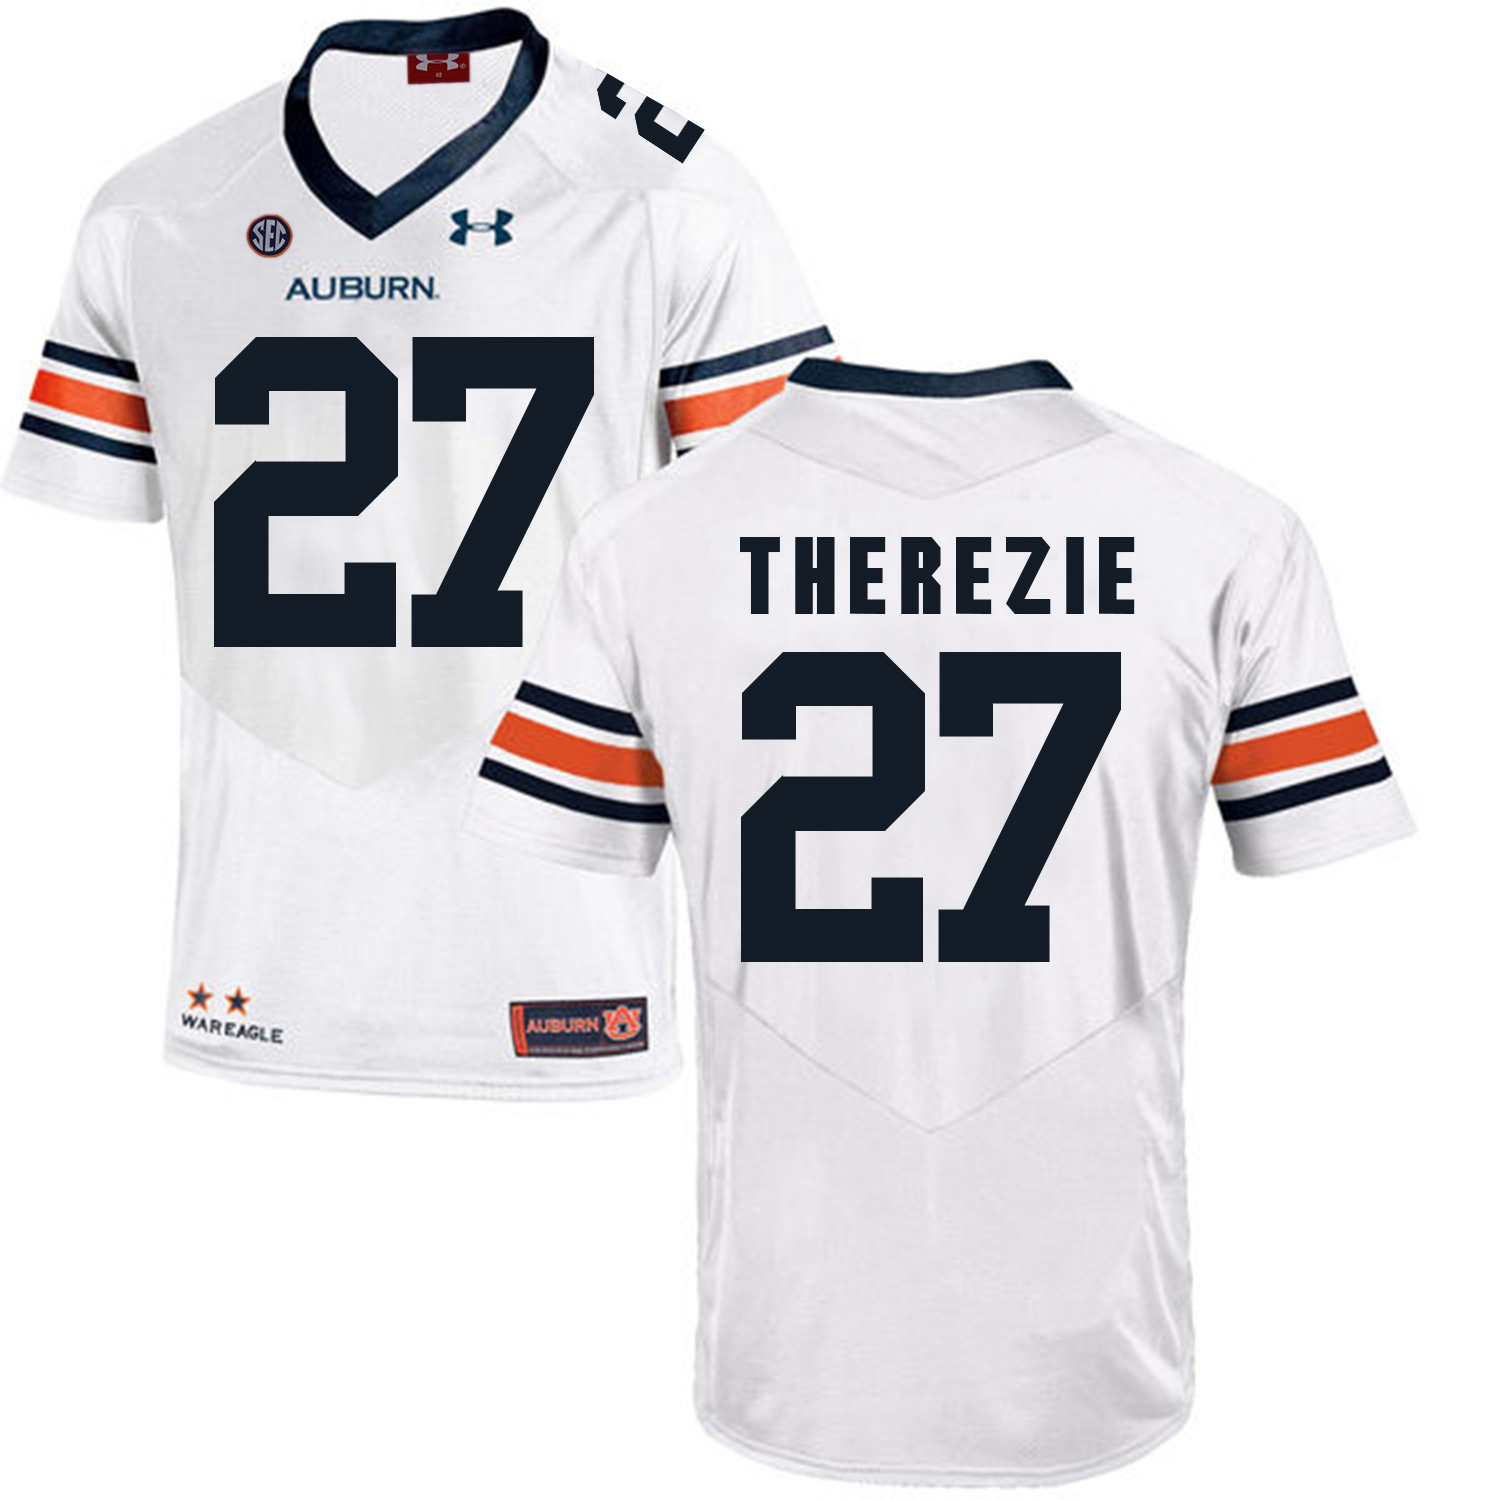 Auburn Tigers 27 Robenson Therezie White College Football Jersey